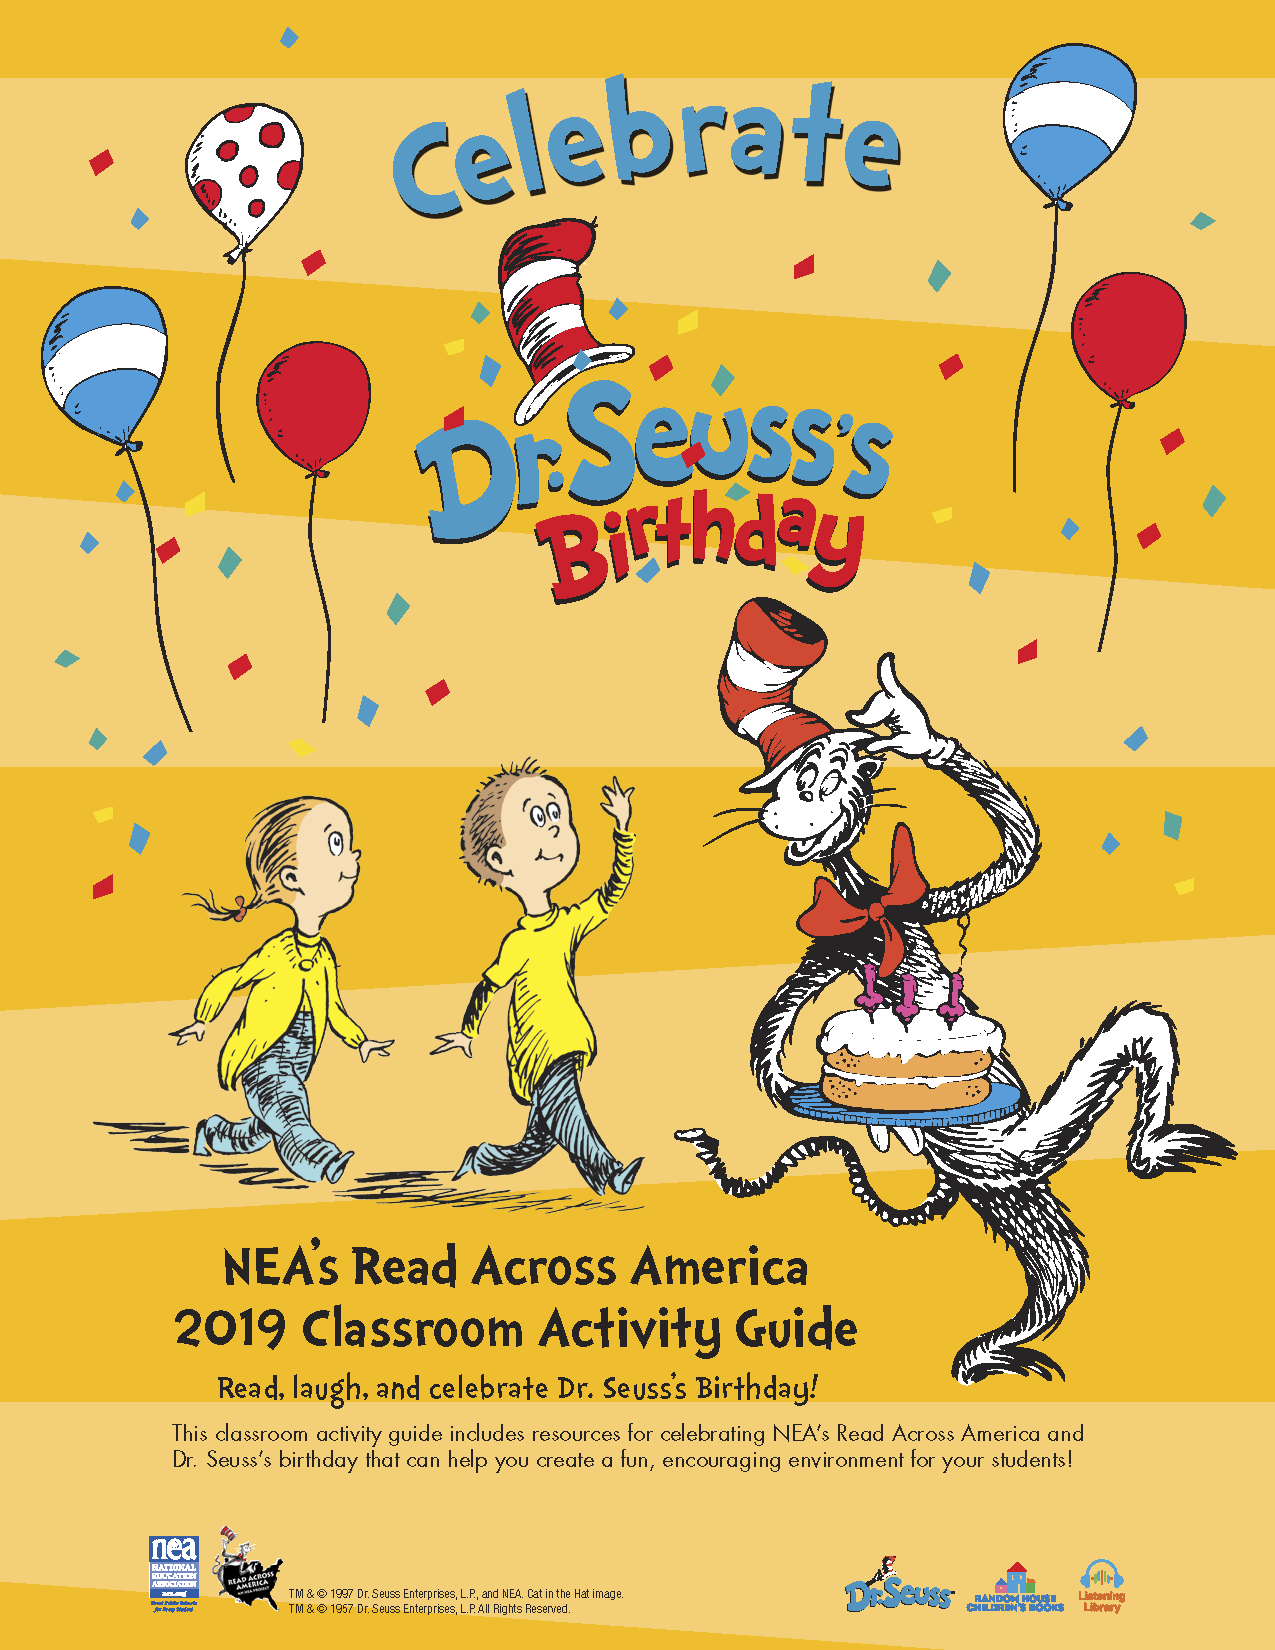 Dr. Seuss Birthday Activity Guide -